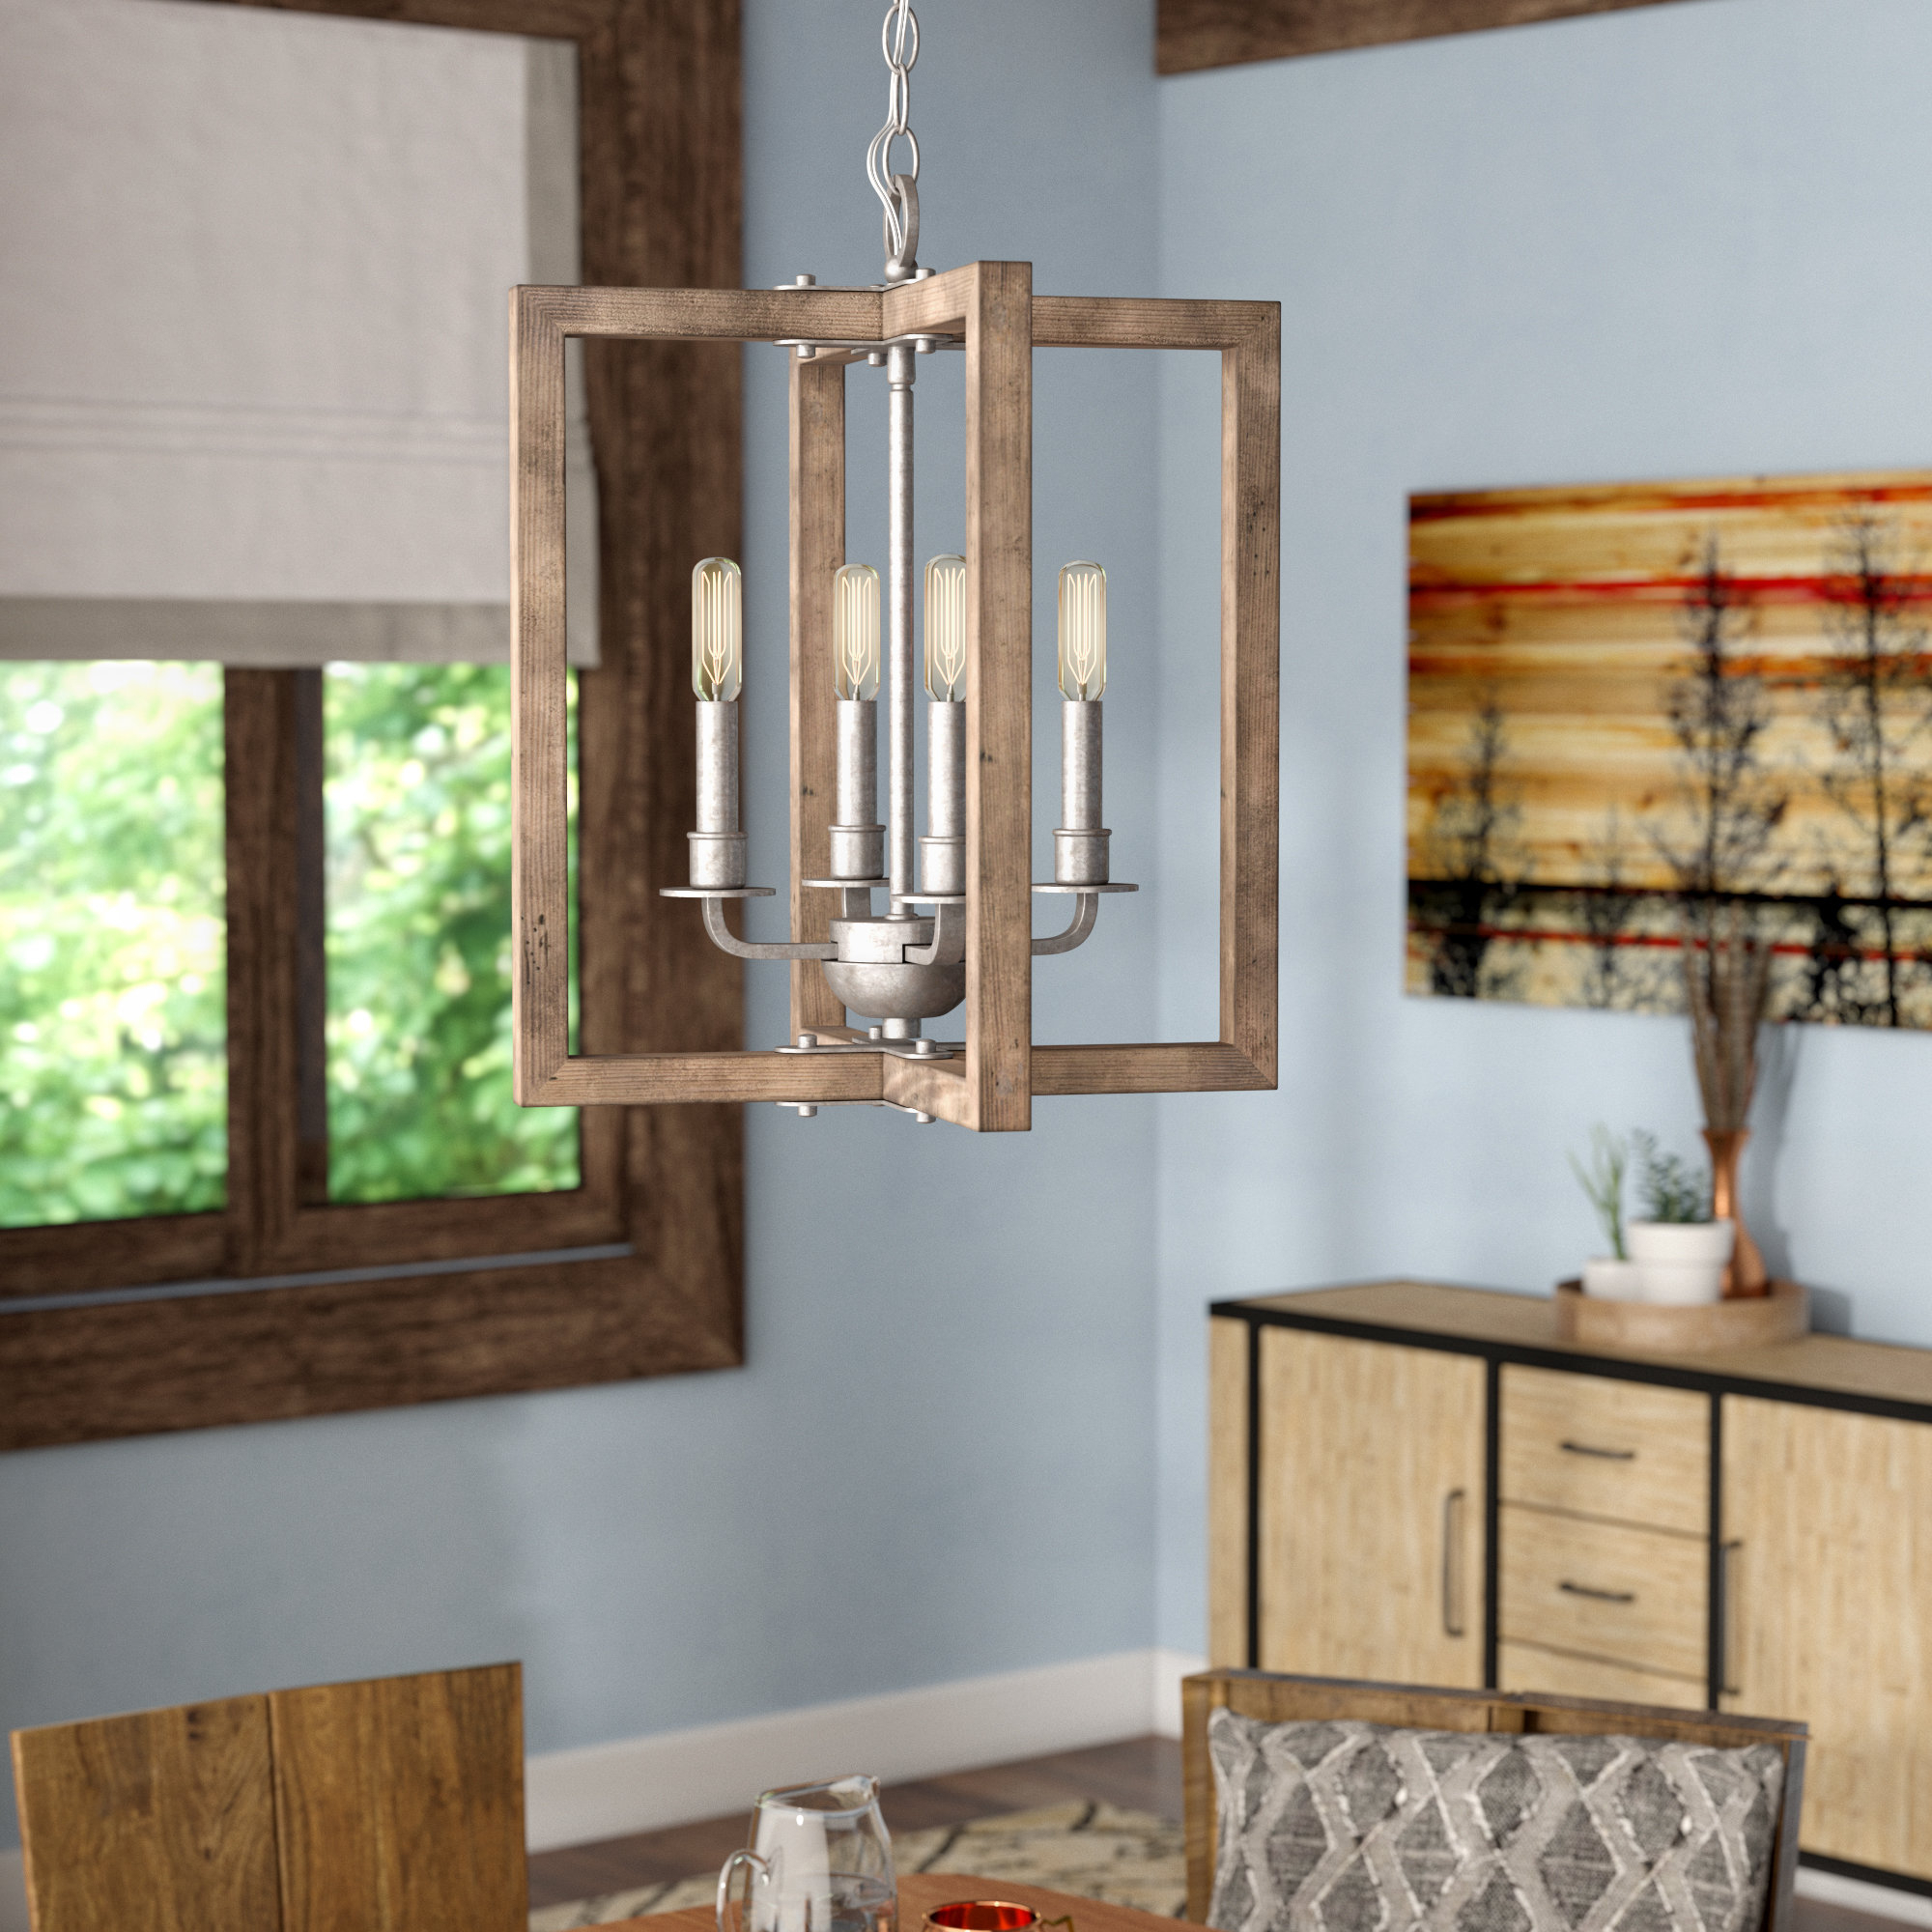 Daugherty 4-Light Square/rectangle Chandelier in Most Up-to-Date William 4-Light Lantern Square / Rectangle Pendants